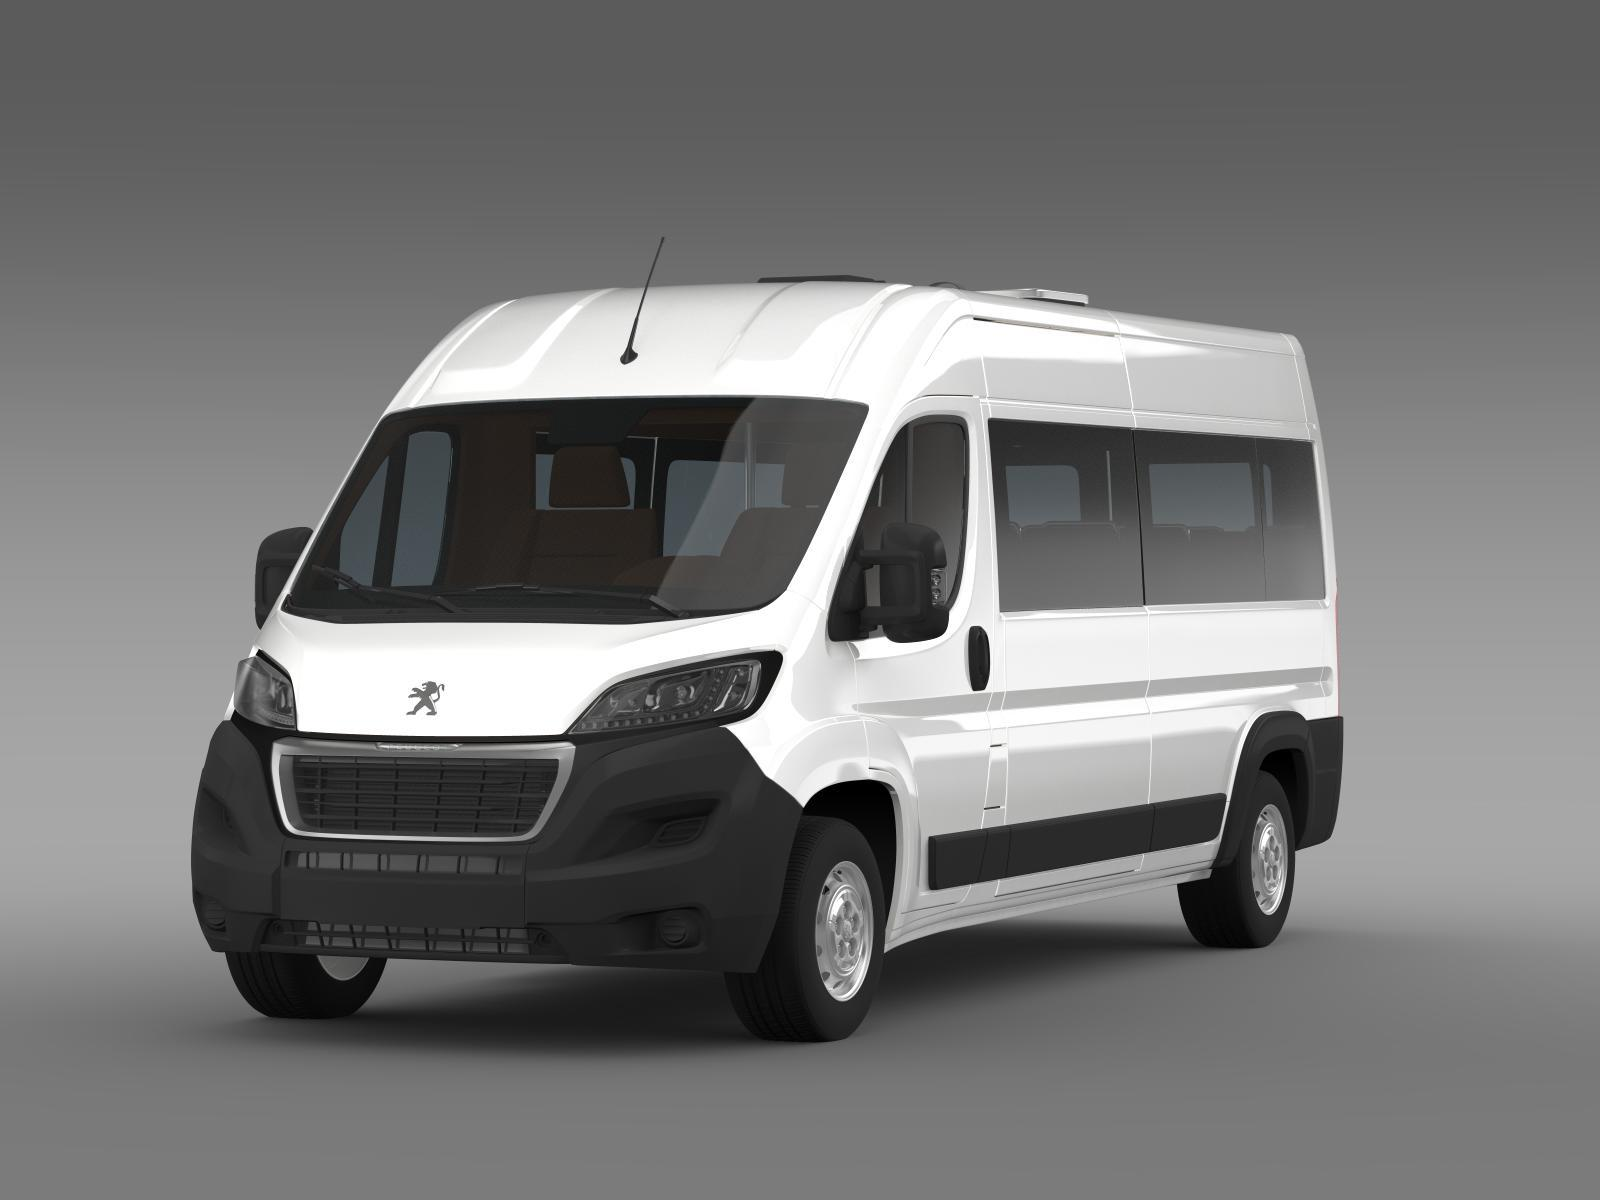 peugeot boxer minibus 2014 by creator 3d 3docean. Black Bedroom Furniture Sets. Home Design Ideas